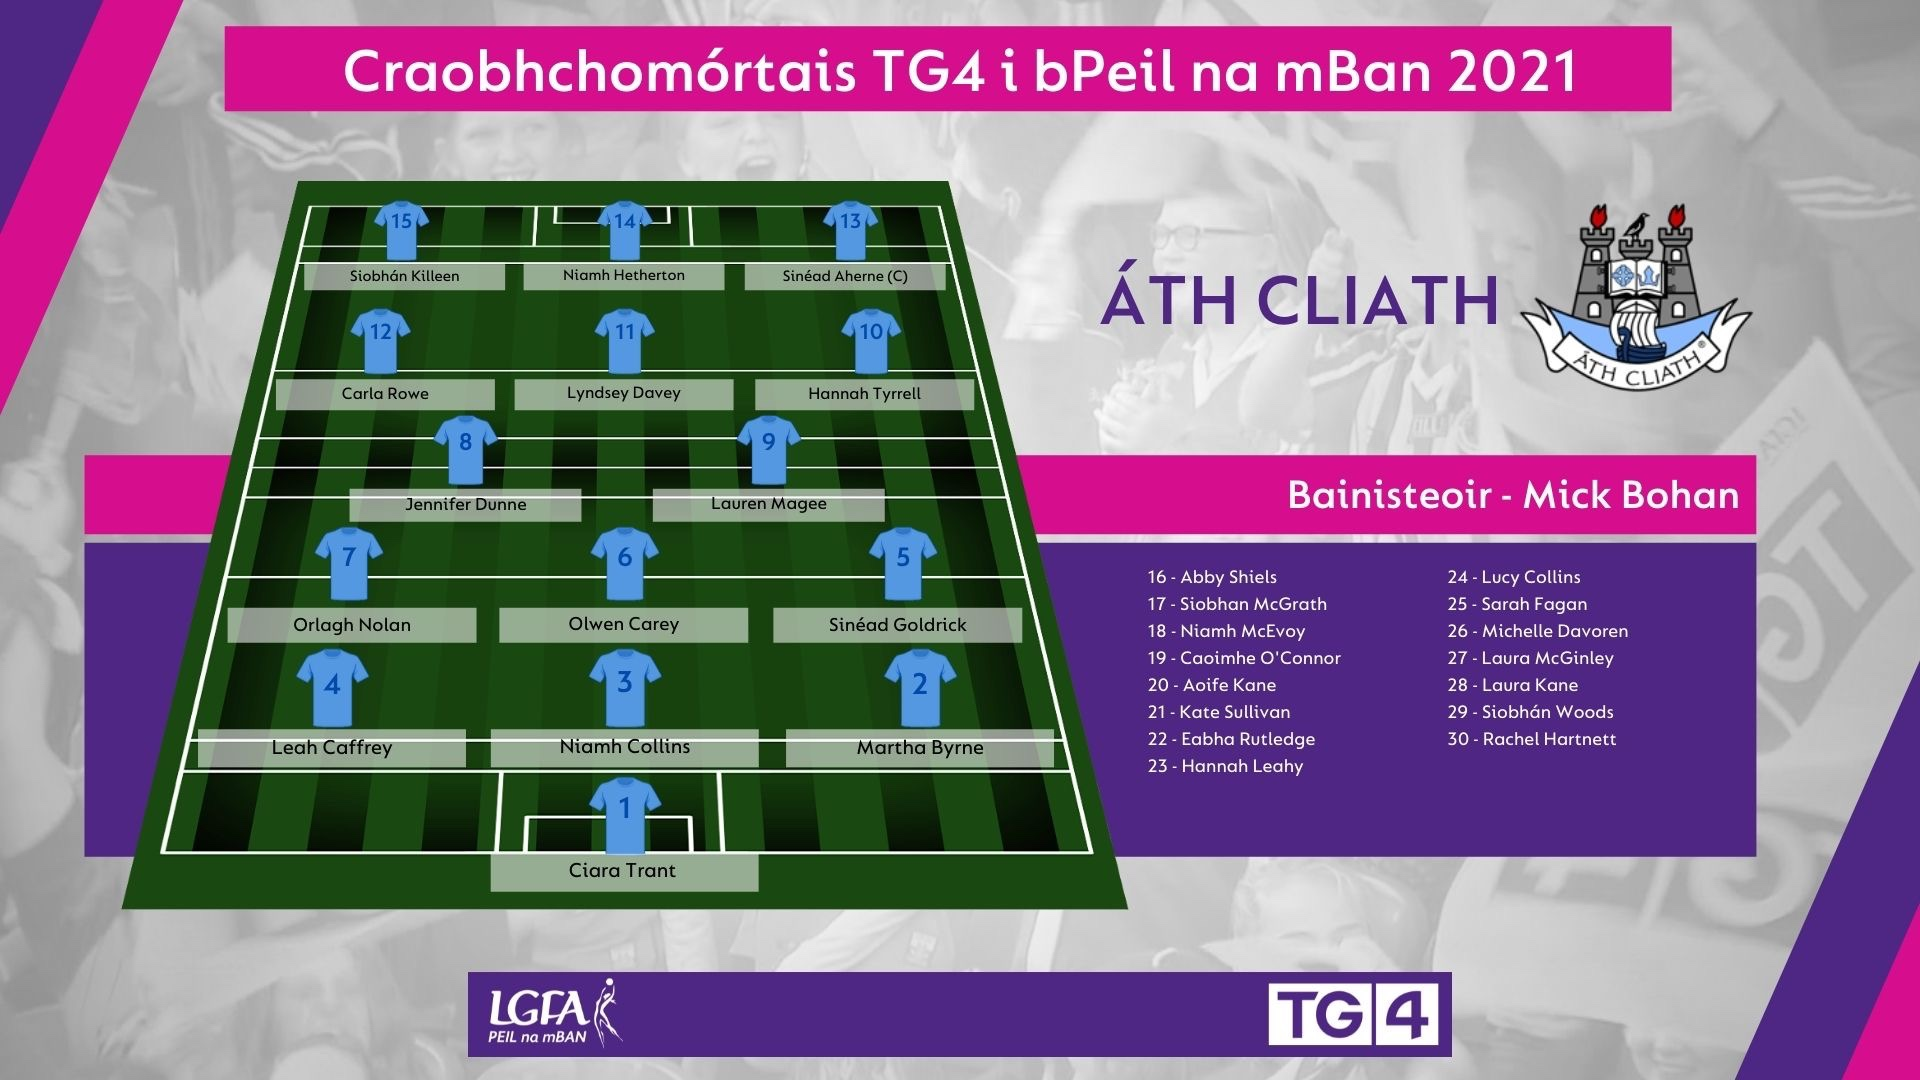 Image of Dublin team selection in the match programme for the 2021 TG4 All Ireland Ladies Football Championship finals on Sunday.